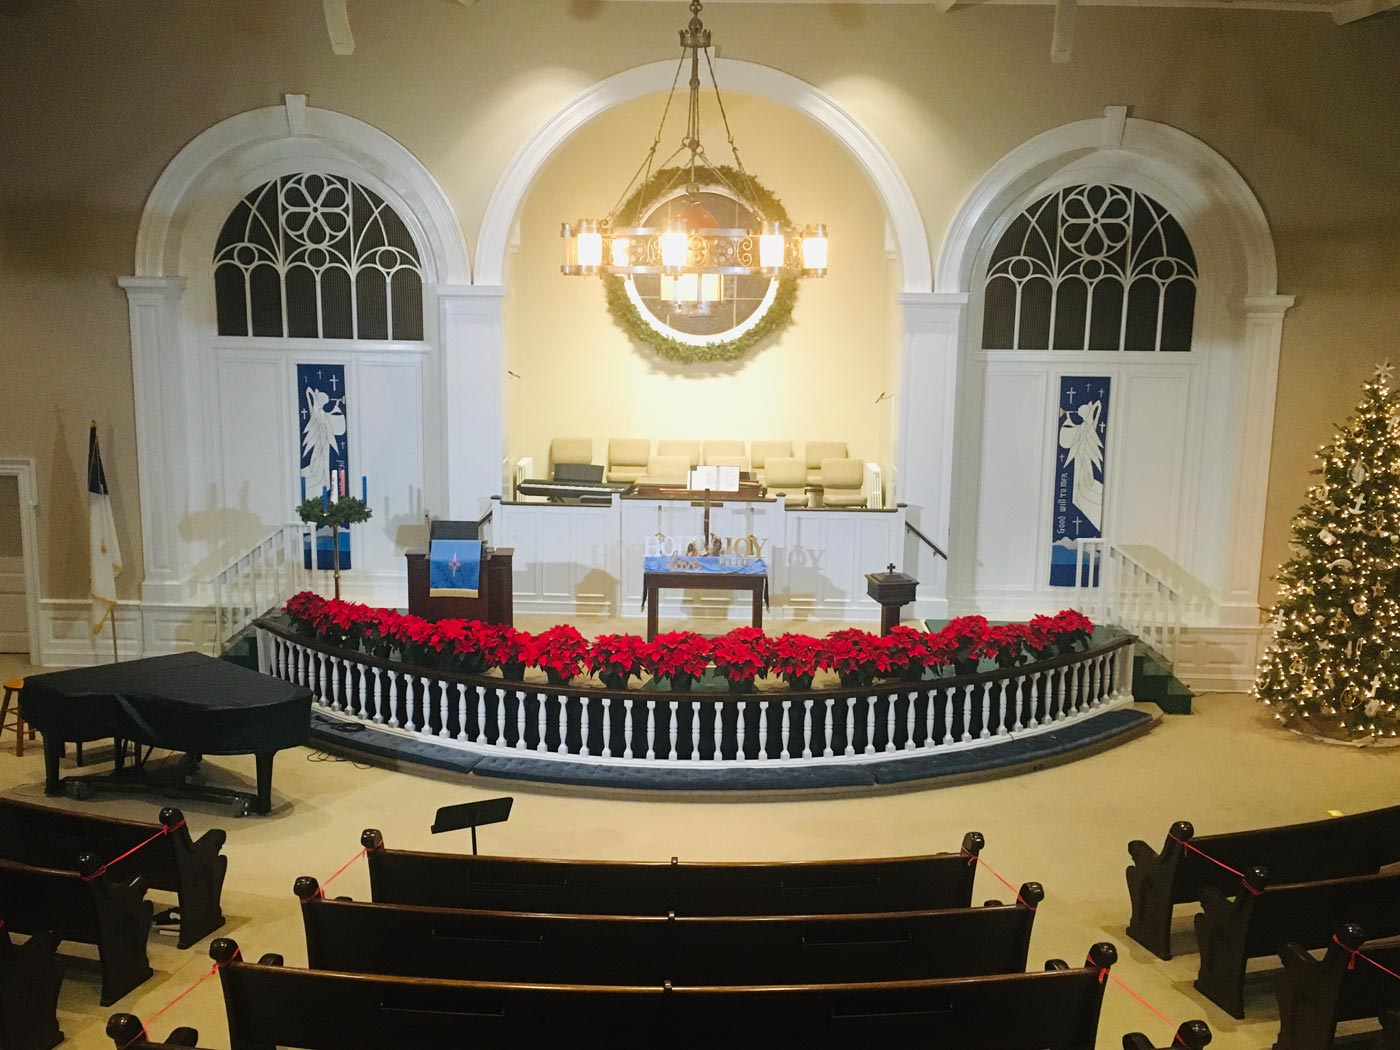 Crenshaw United Methodist Church sanctuary